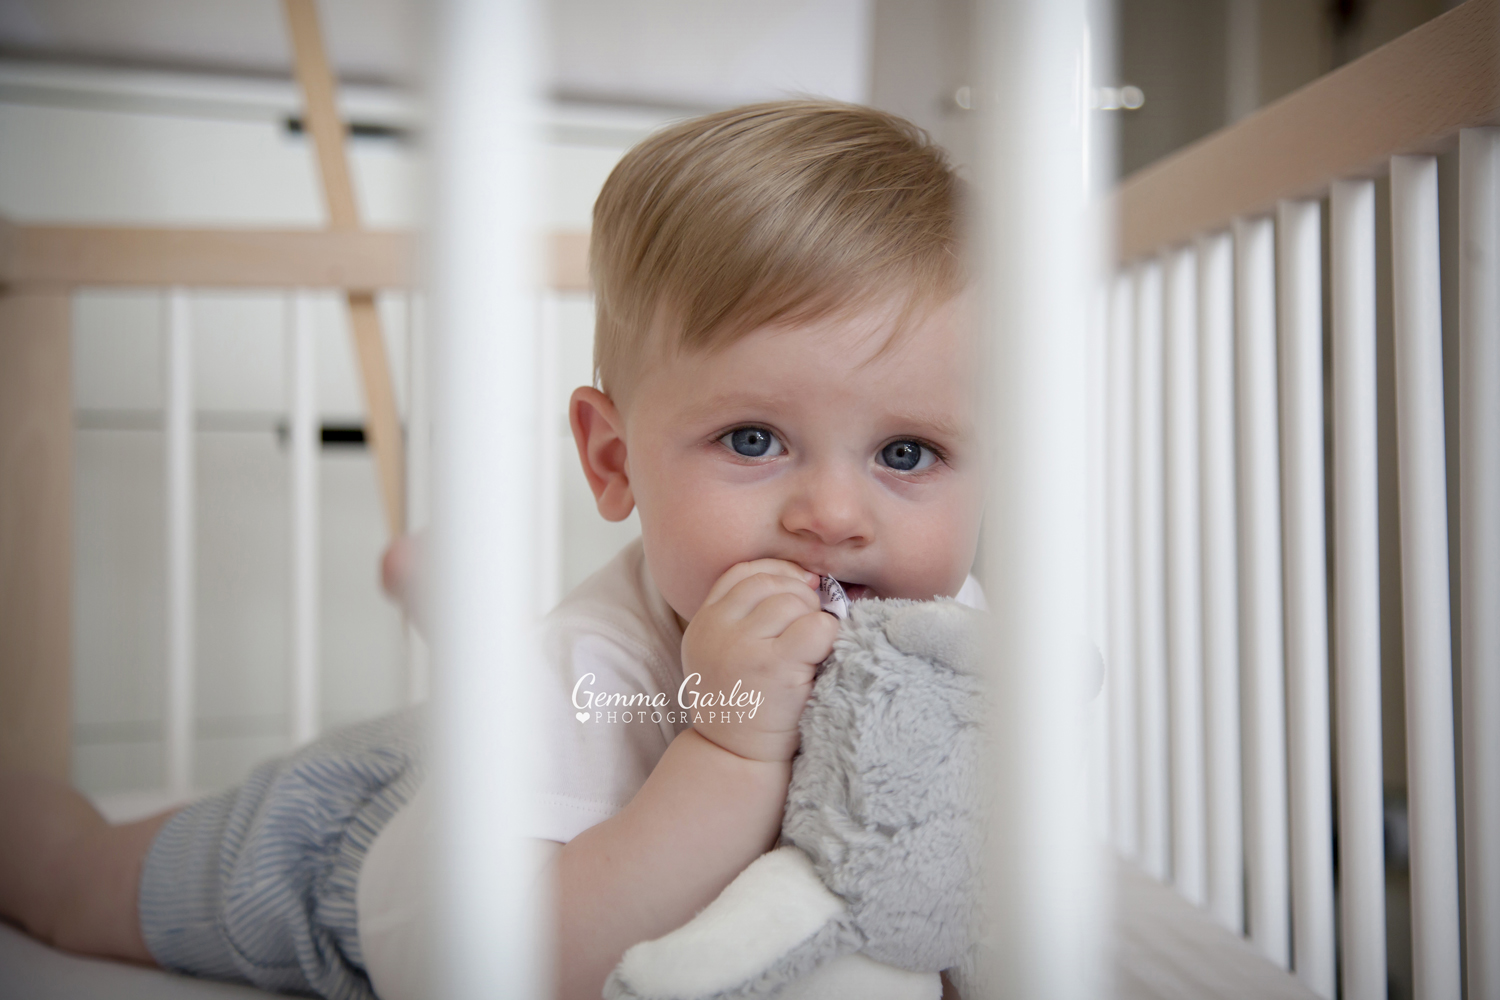 baby lifestyle photographer bournemouth poole dorset gemma garley photography.jpg